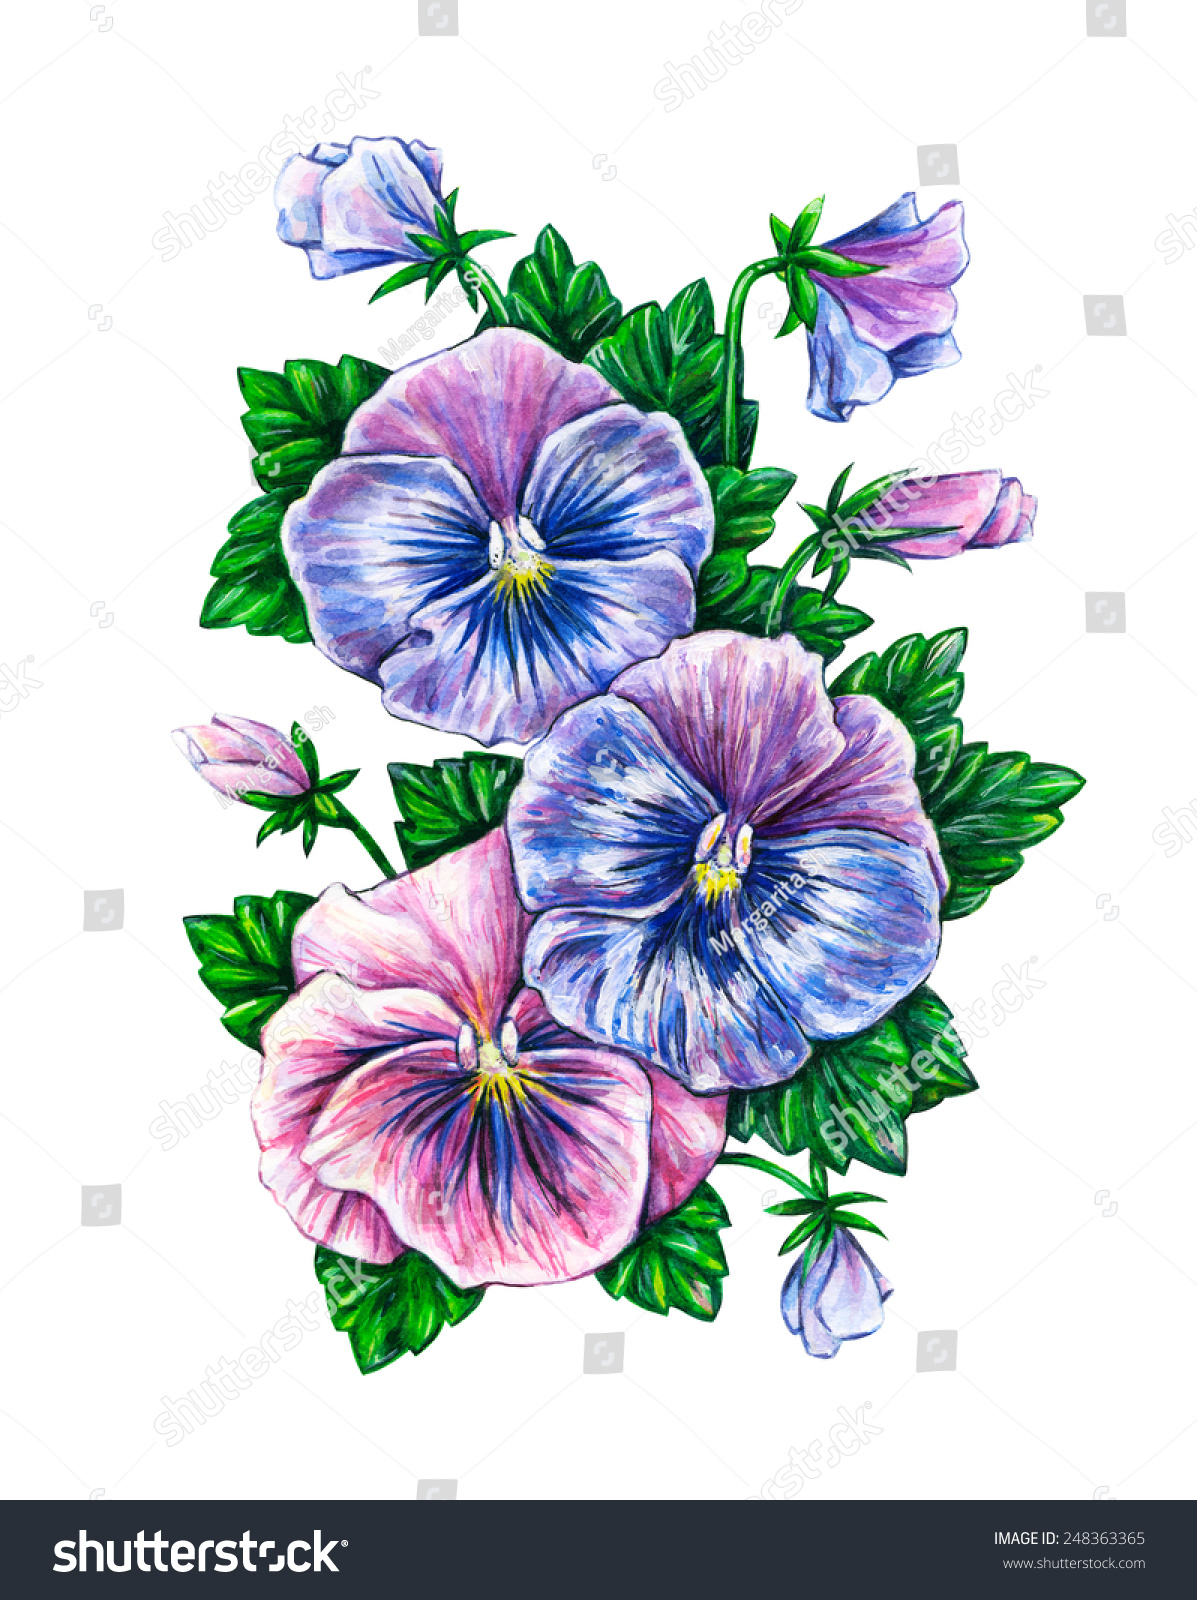 pansy flower drawing - photo #28